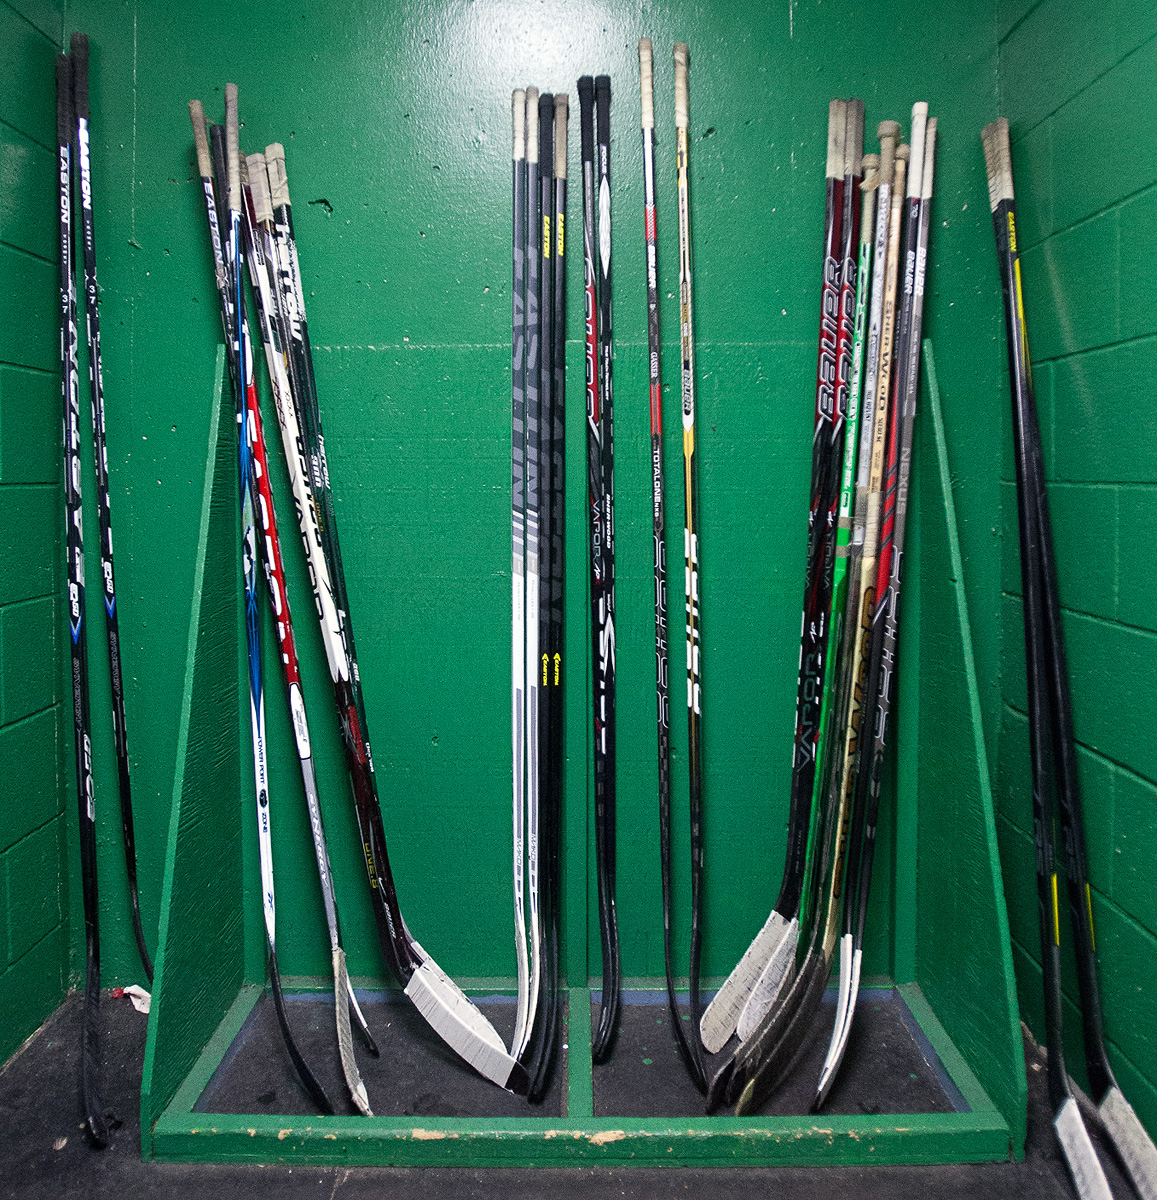 UW_Hockey_Sticks